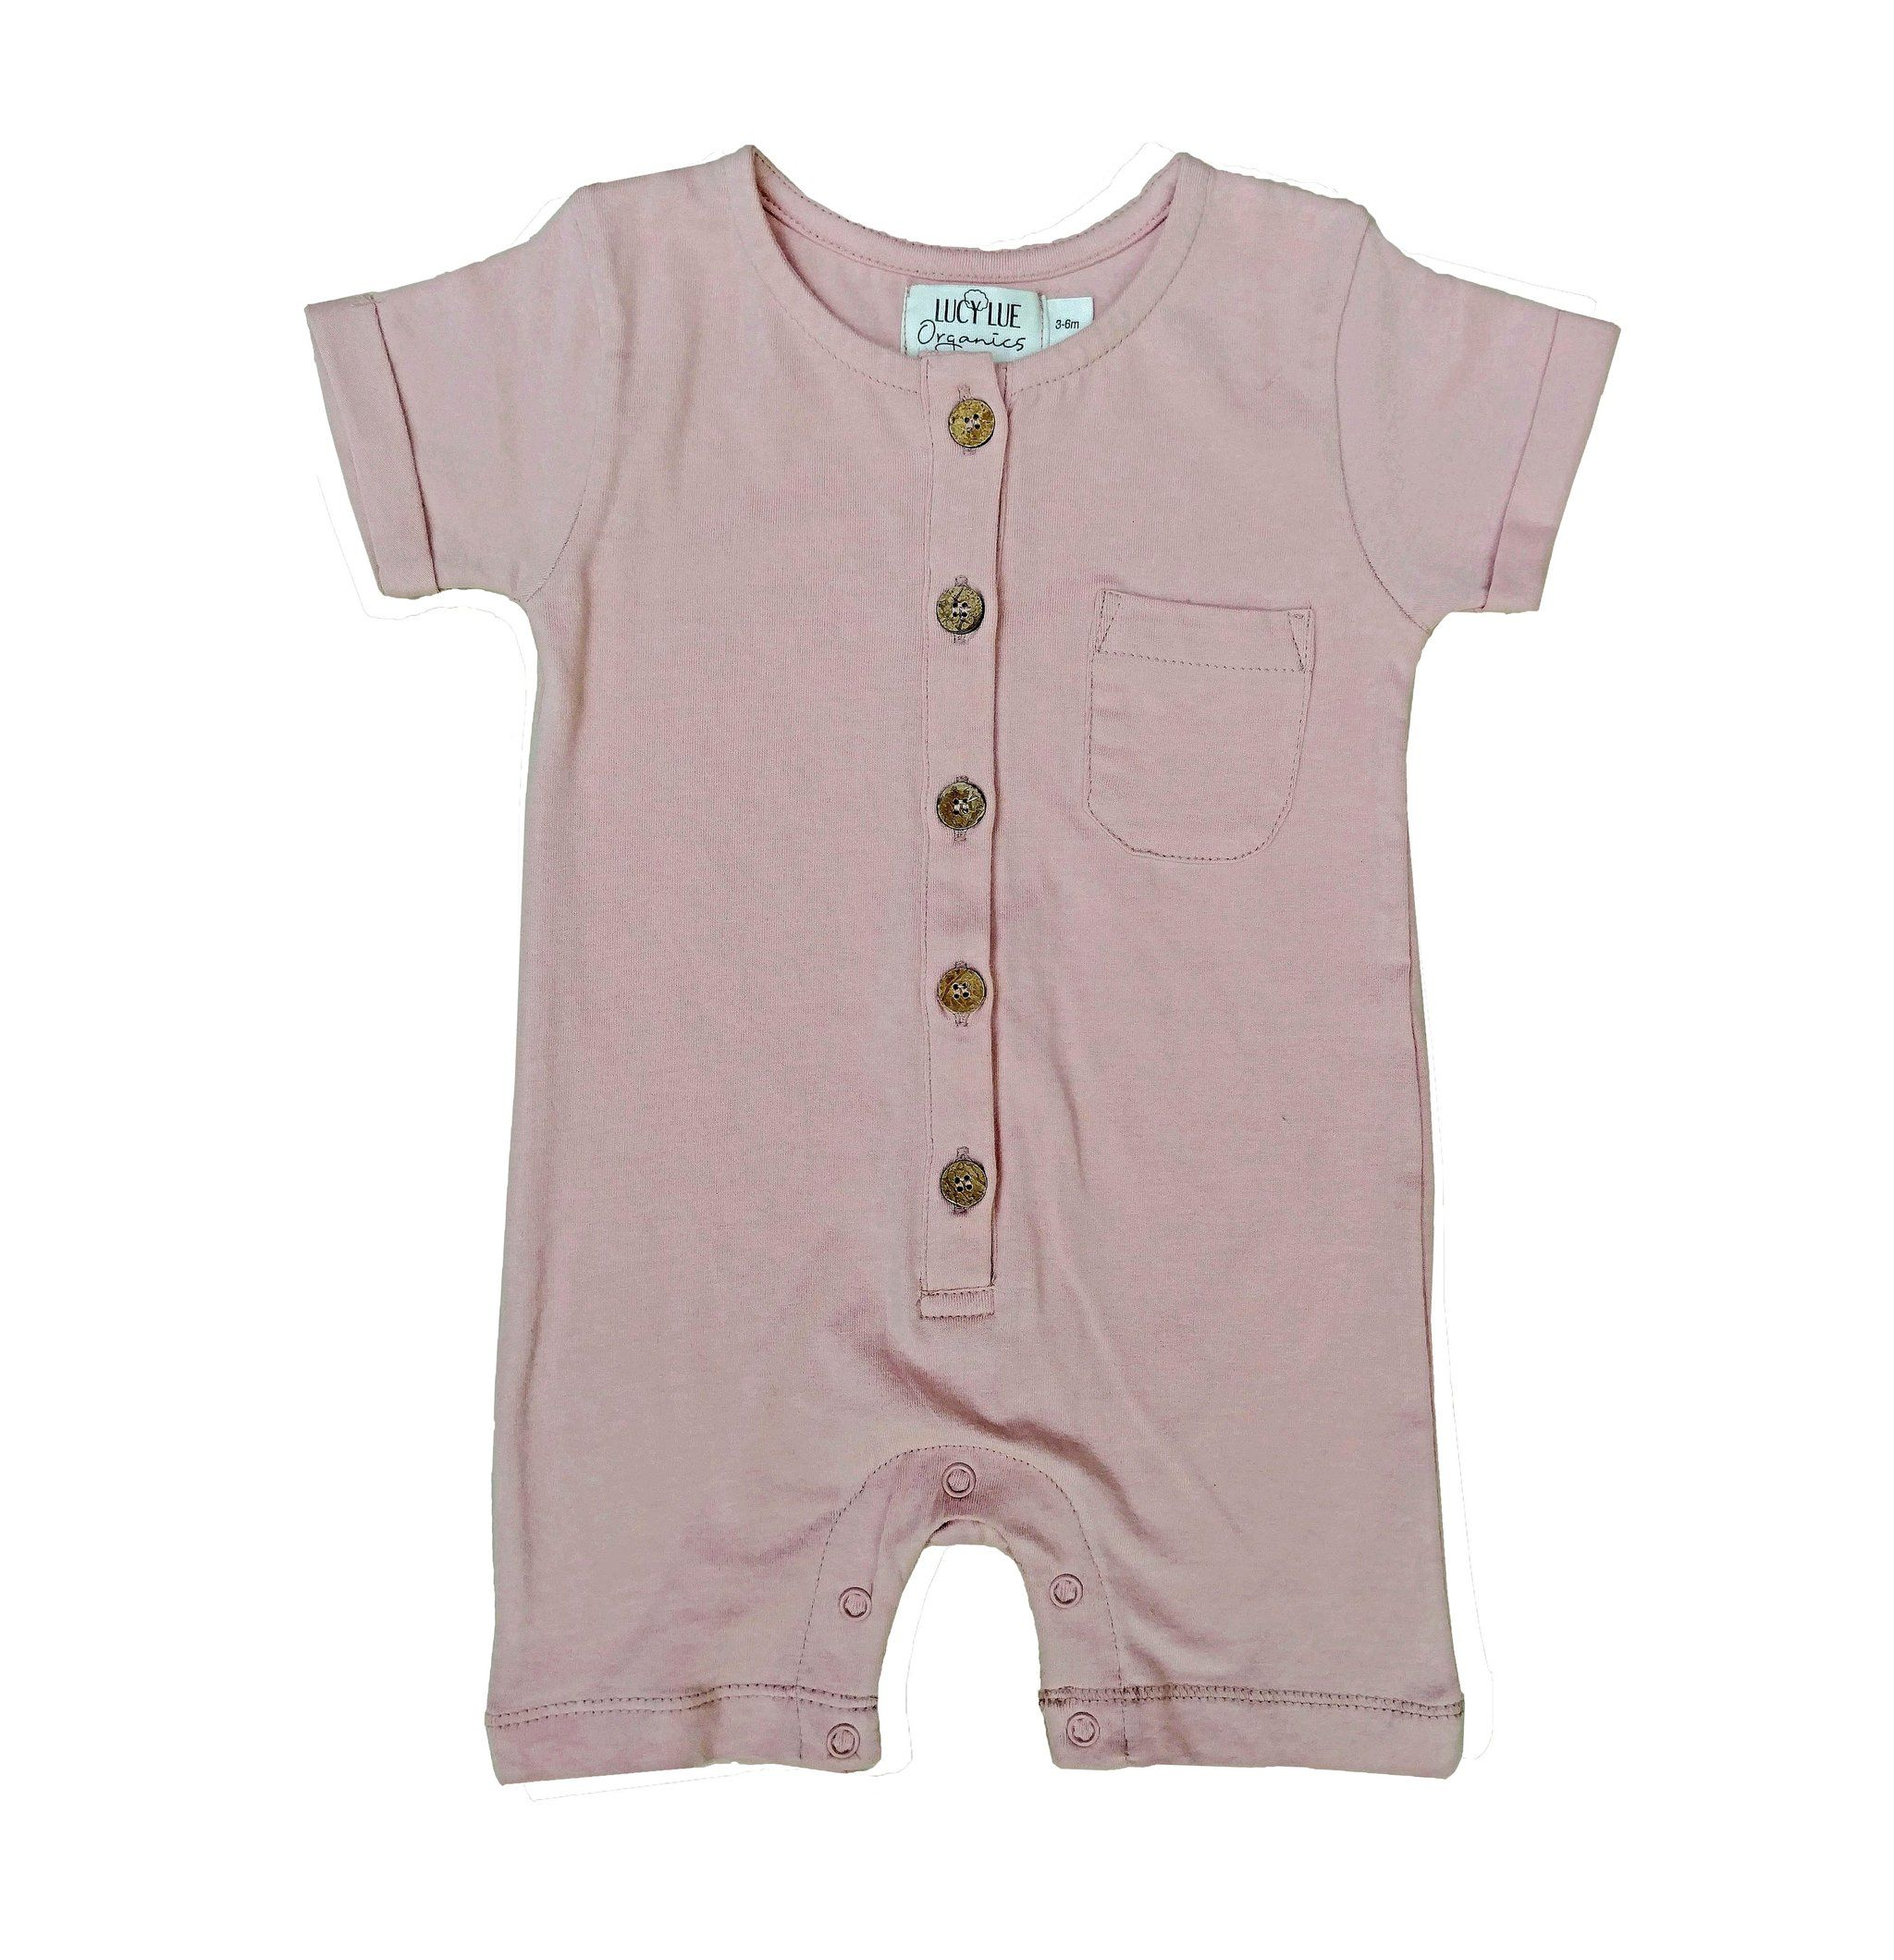 Coconut Cotton Unisex Baby//Toddler Key Romper